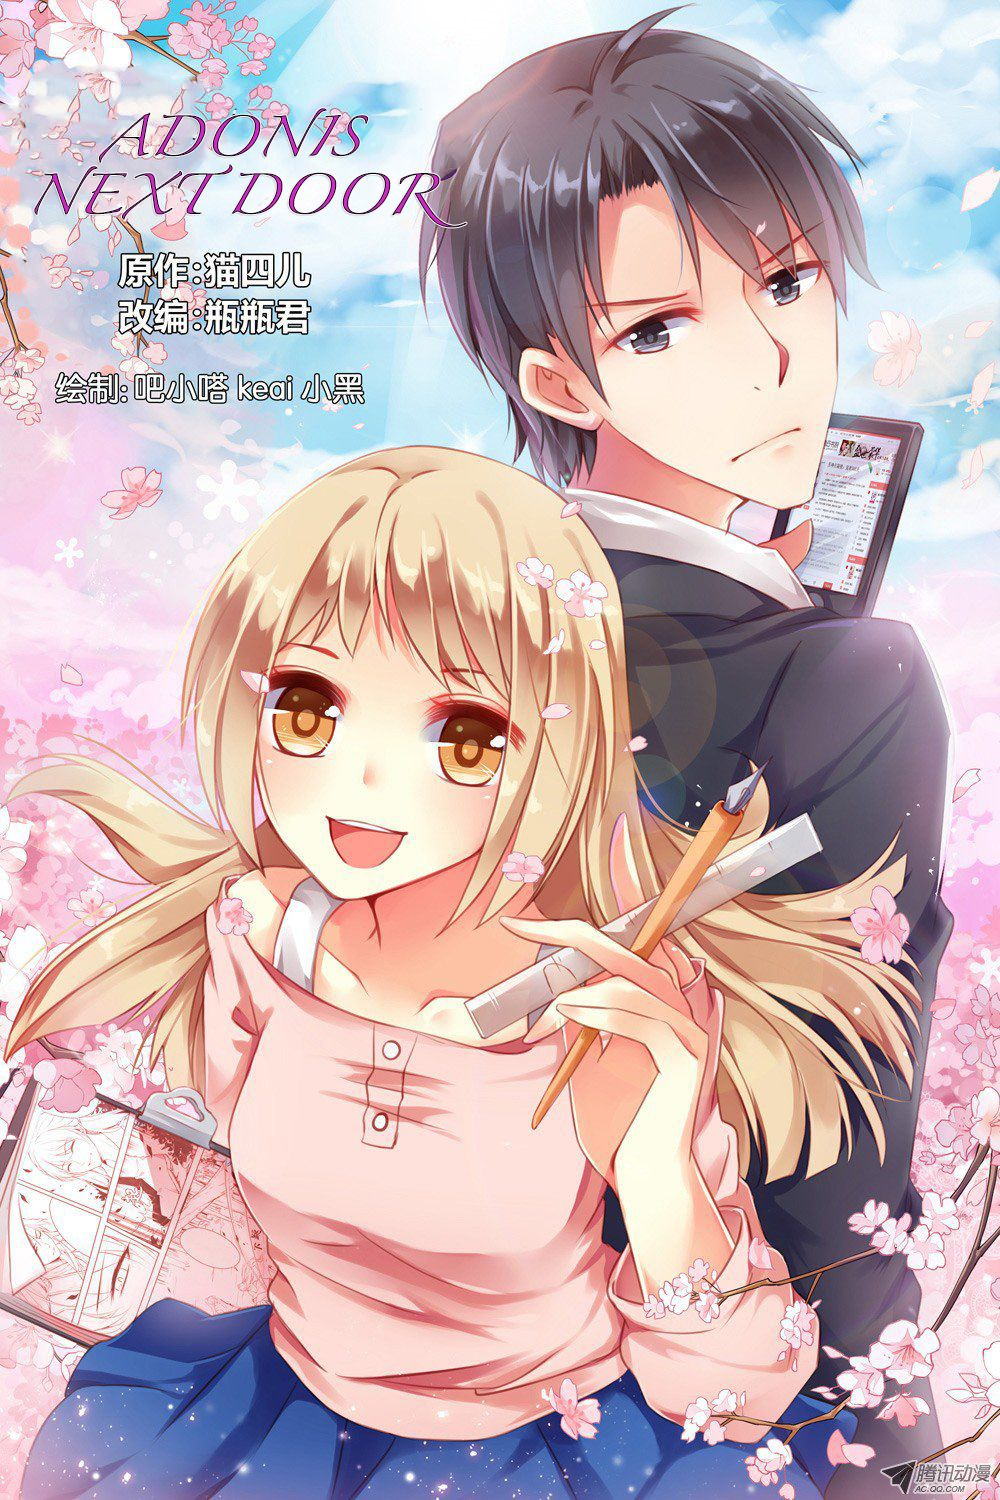 A new title adonis next door by san fu dong man comedy romance about a manhua author looking for her gfo to marry when she meets her handsome new